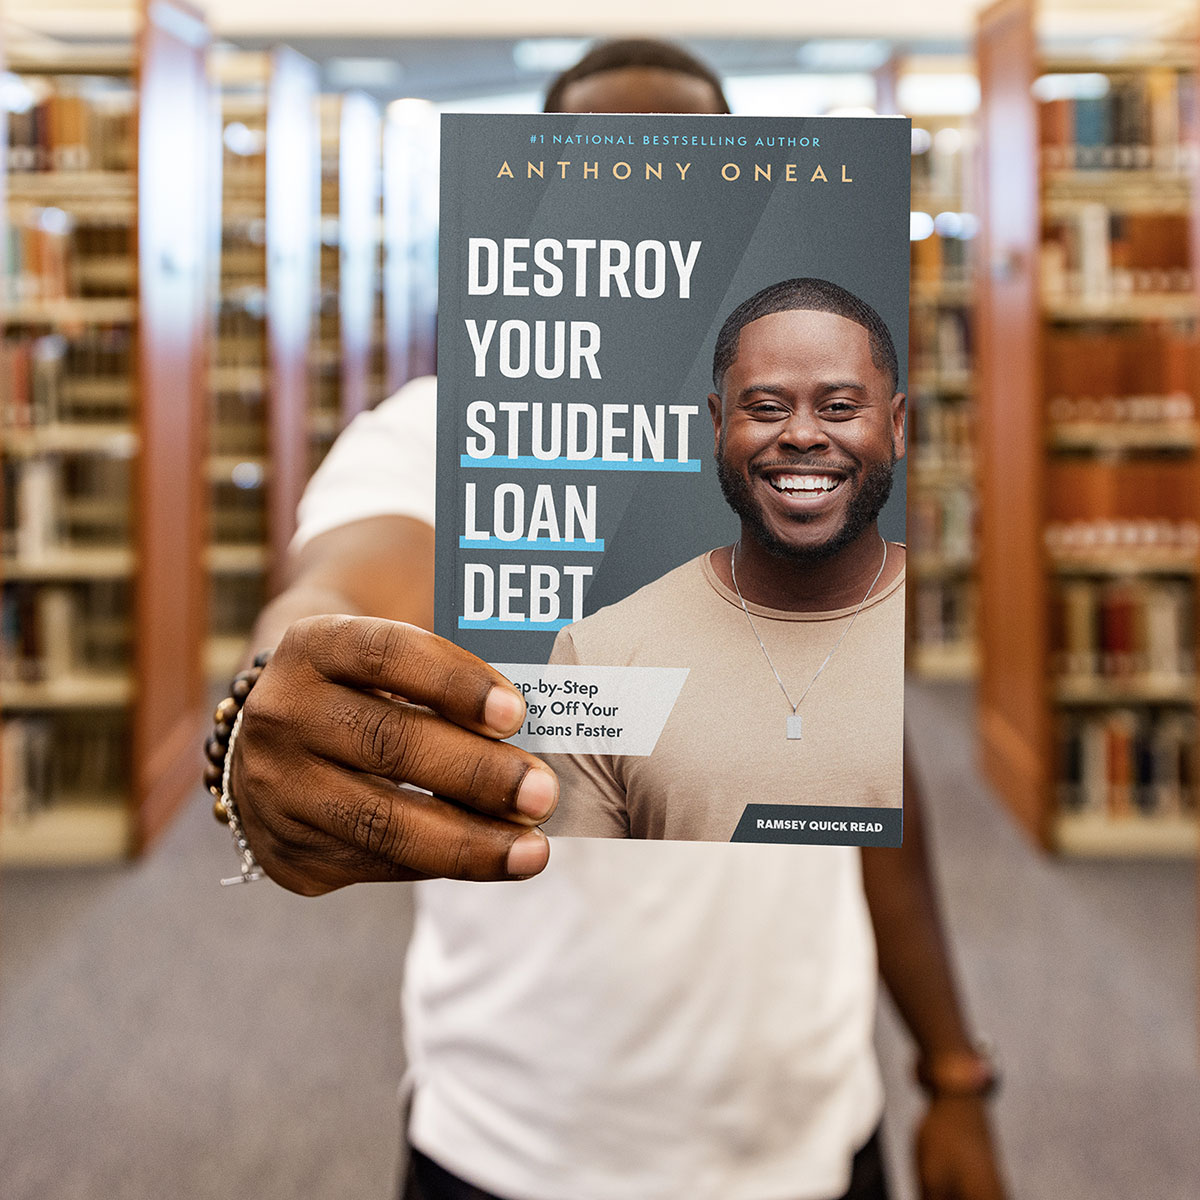 Man holding destroy your student loan debt book